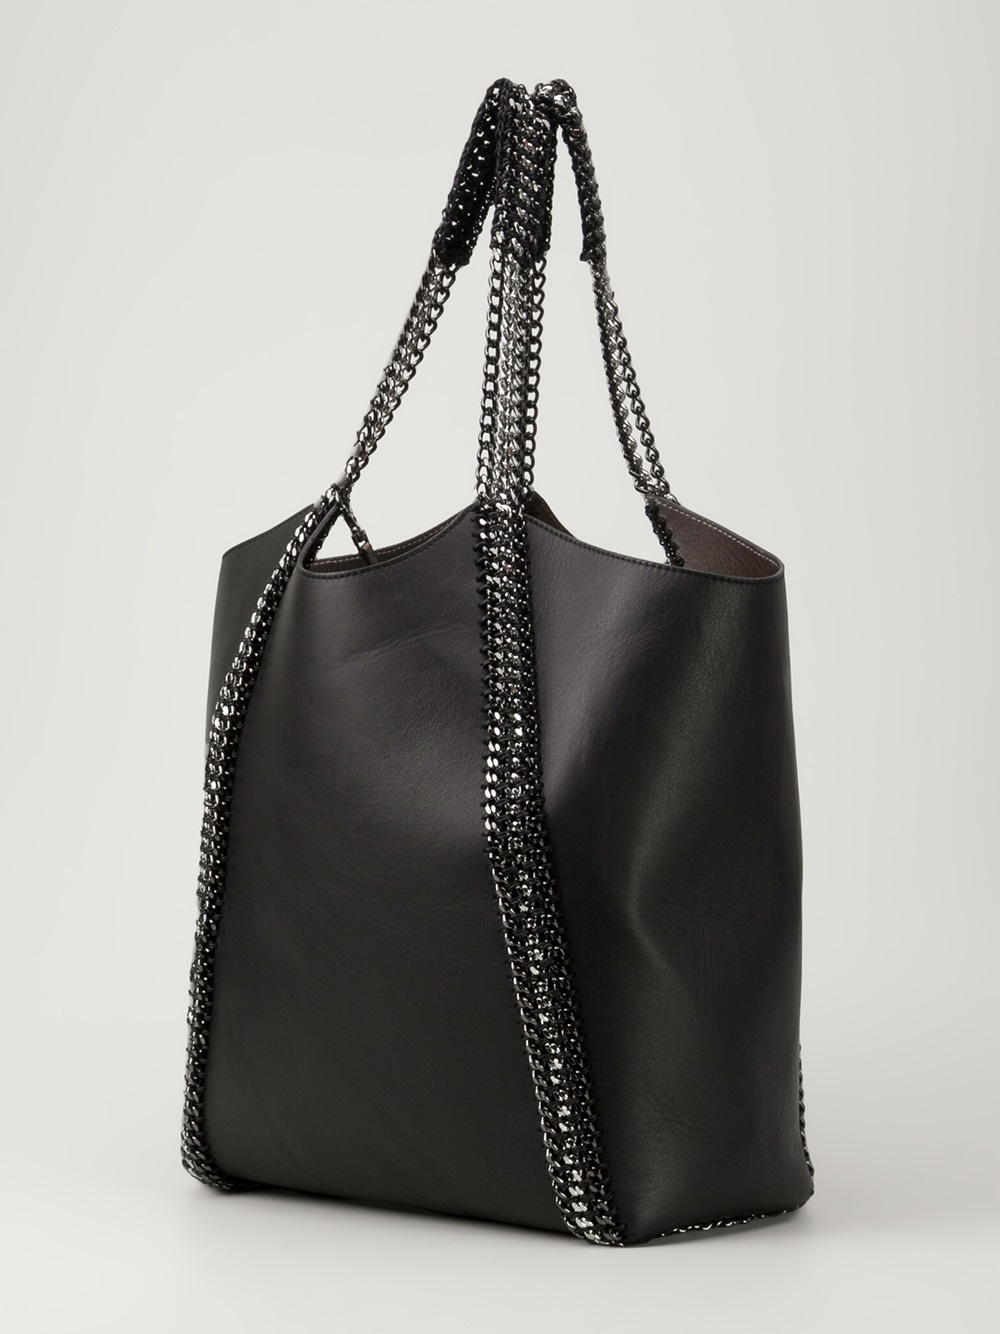 de couture chain link tote bag in black lyst. Black Bedroom Furniture Sets. Home Design Ideas